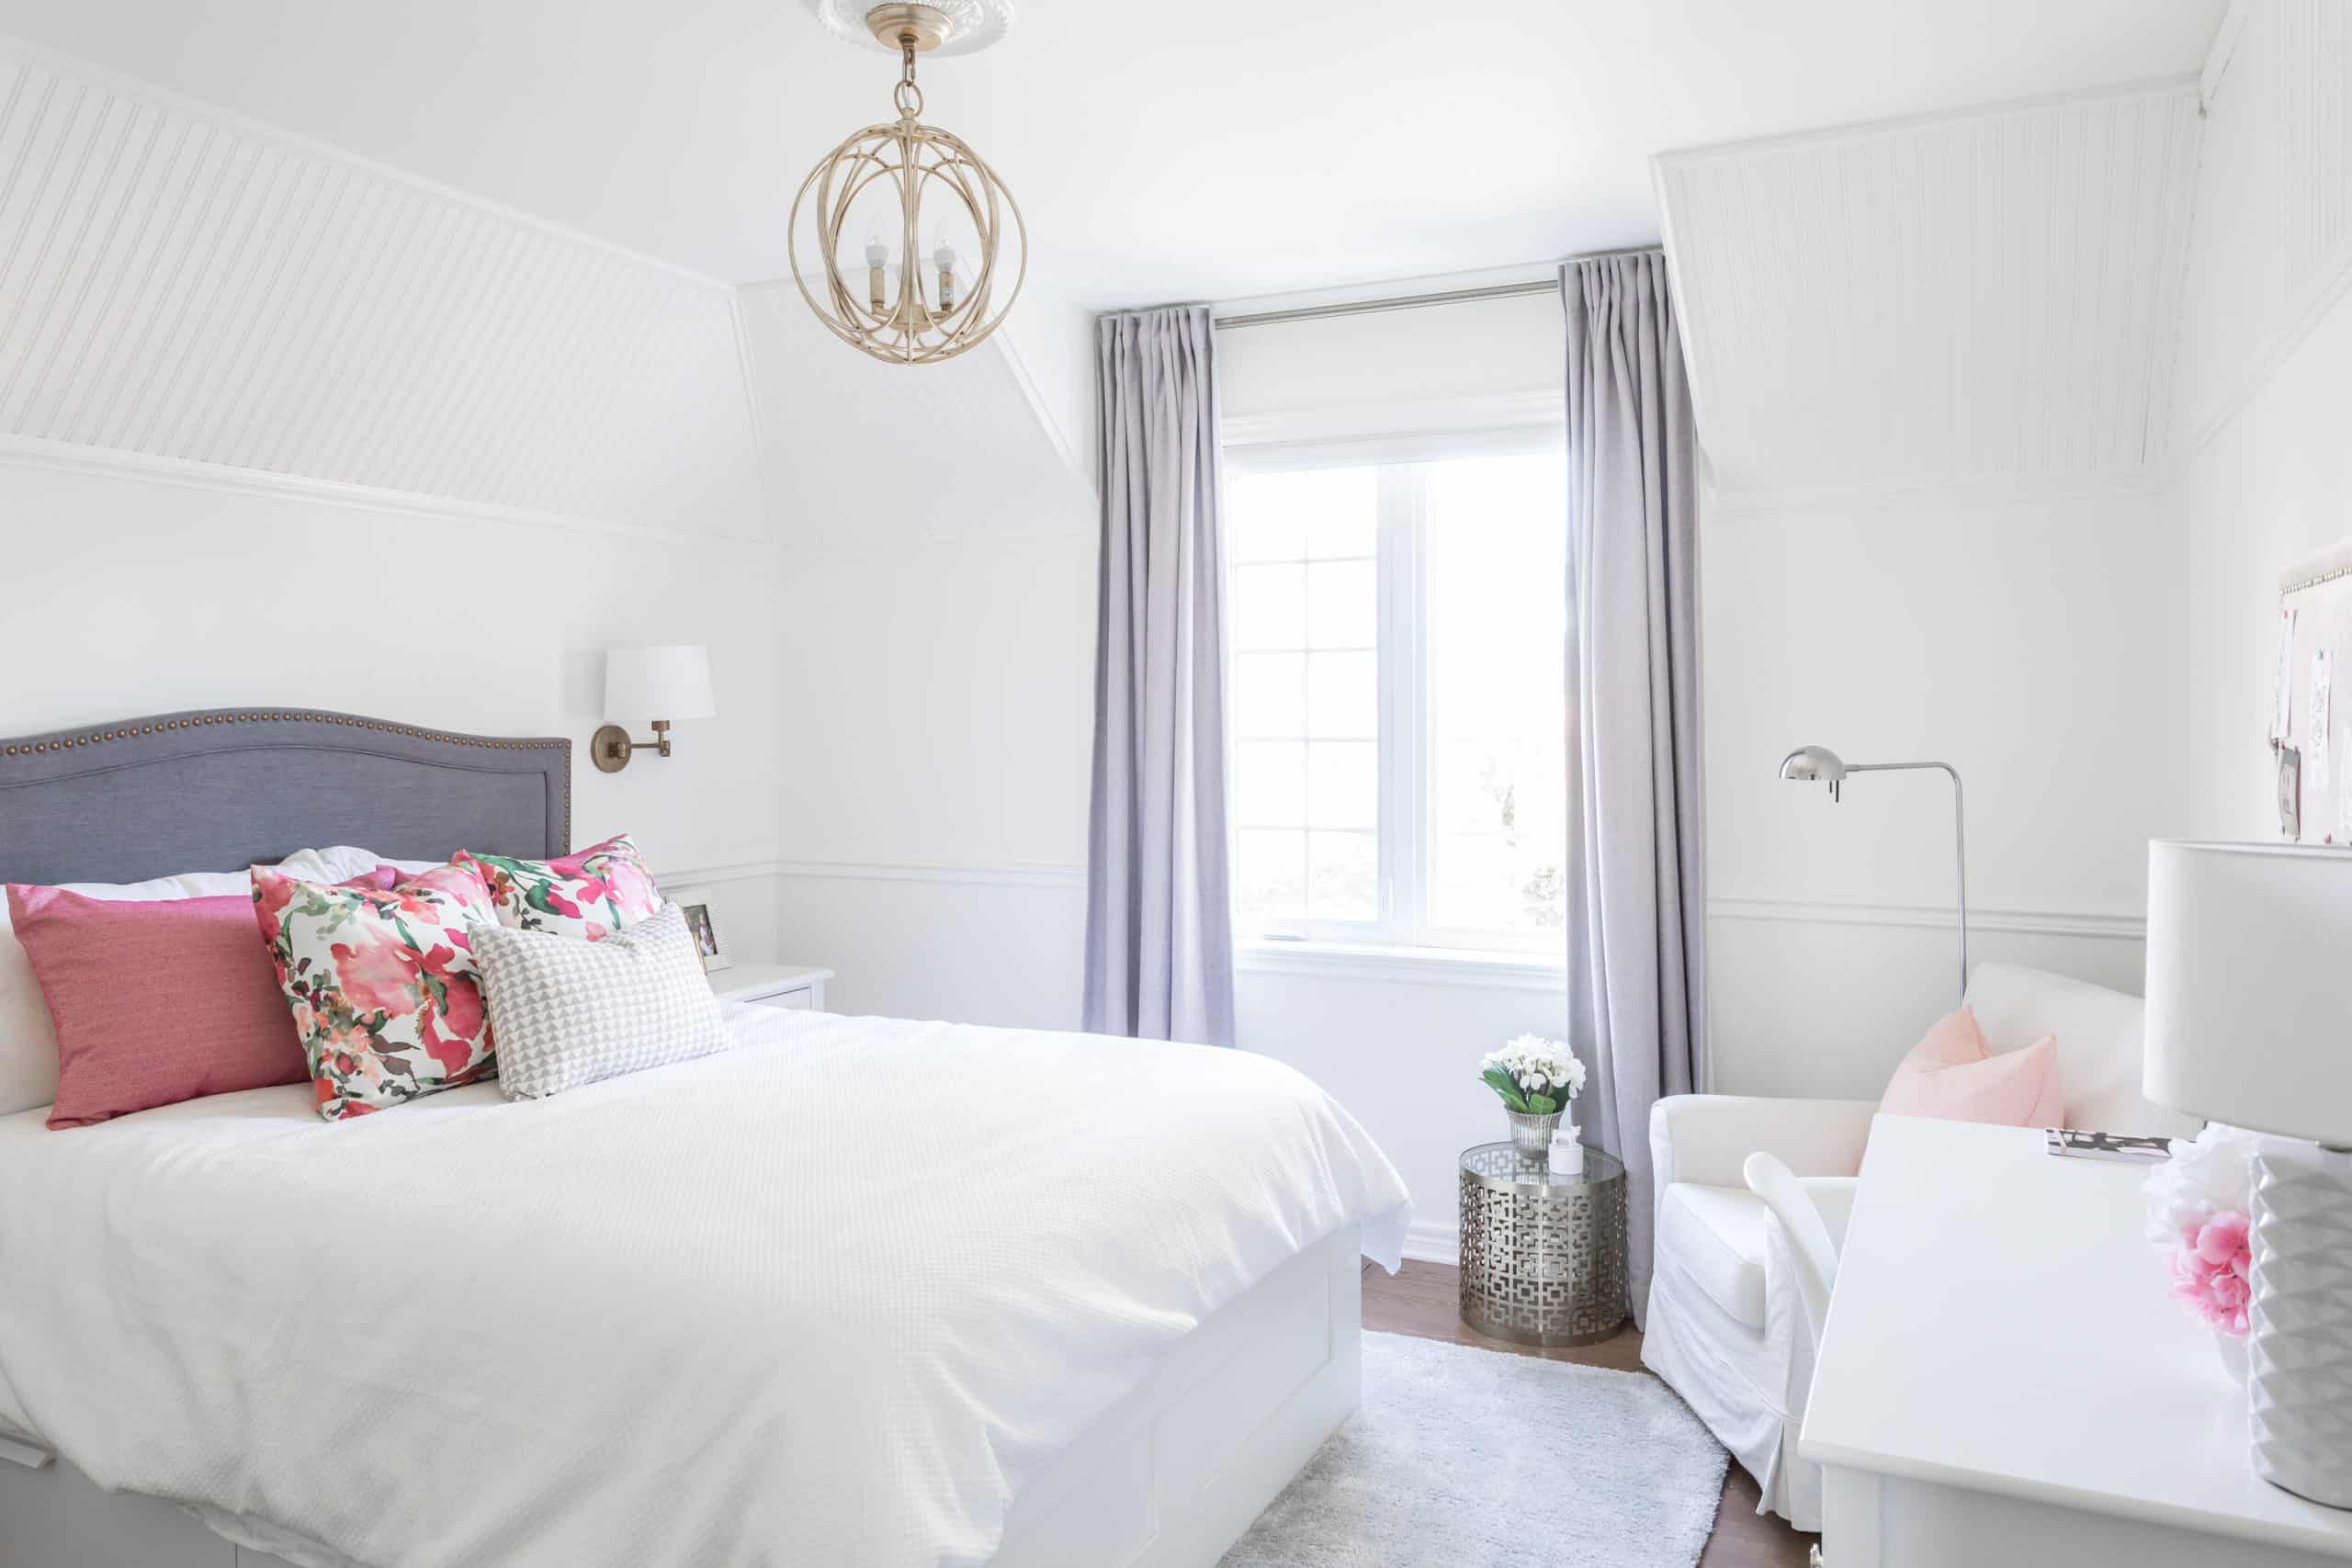 Bedroom with a white, pink and purple color scheme